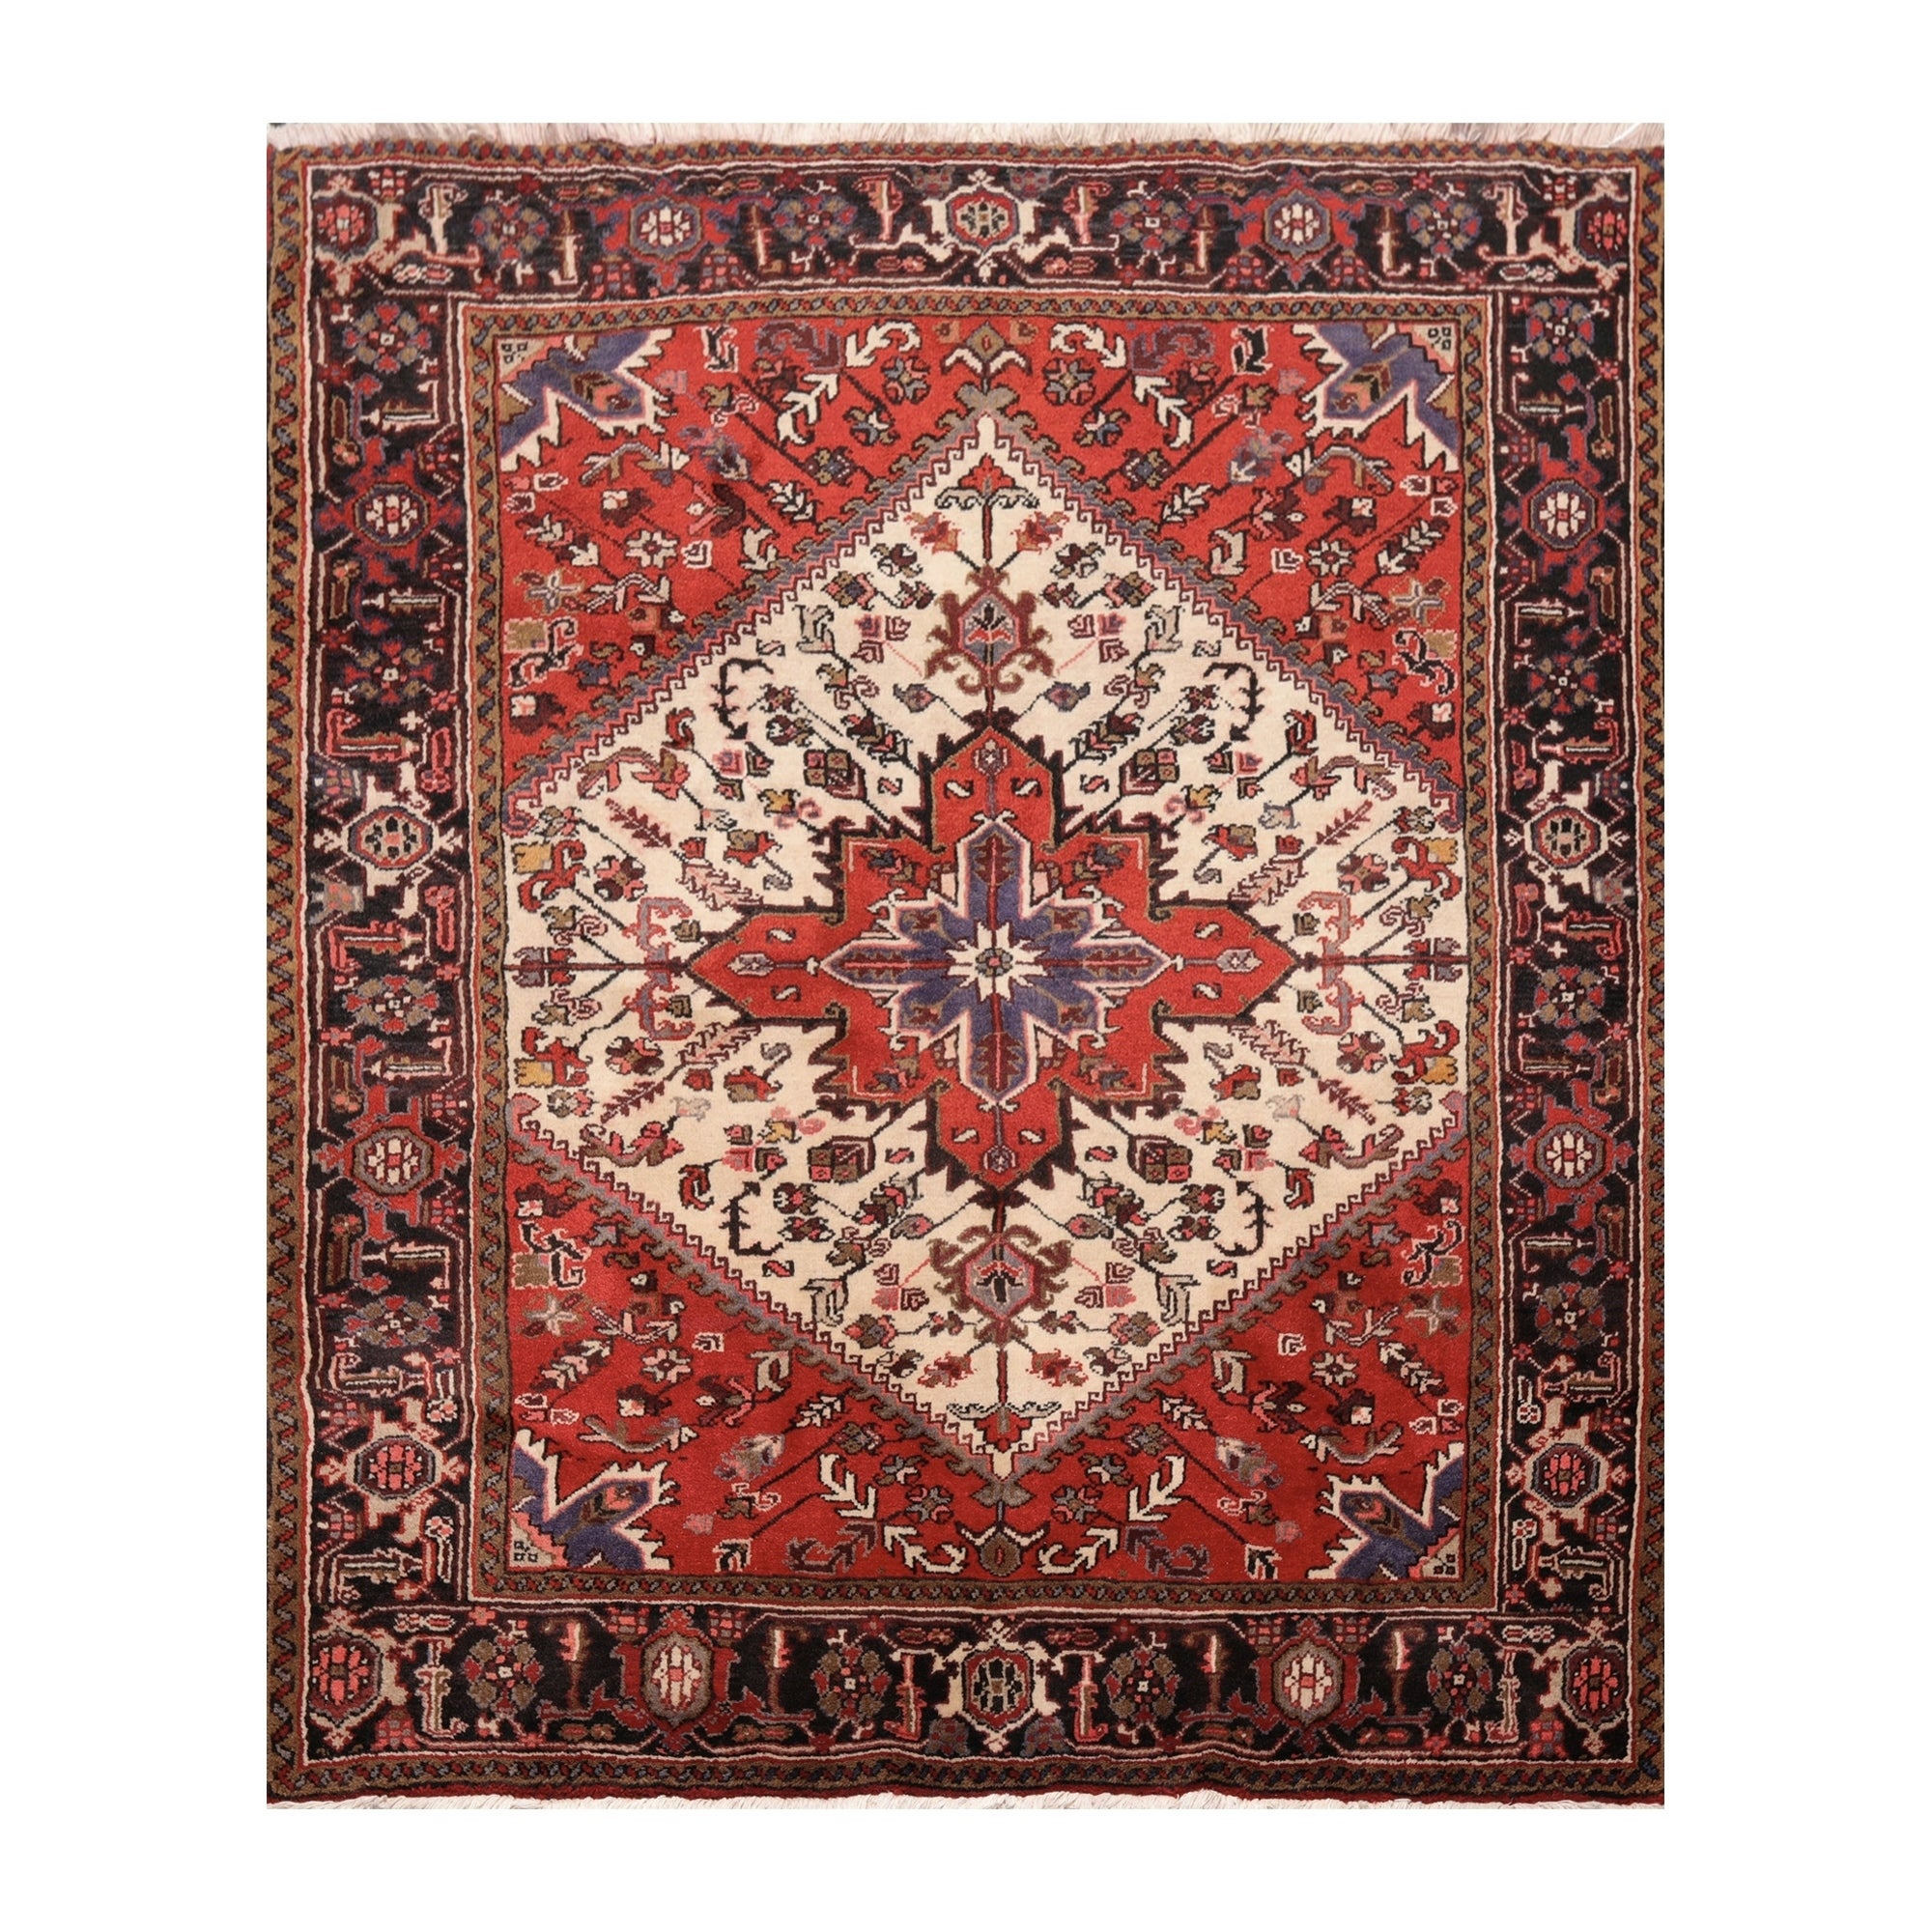 Heriz Hand Knotted Ivory Red Wool Persian Oriental Area Rug 5 3 X6 4 4 11 X 6 6 On Sale Overstock 31169274